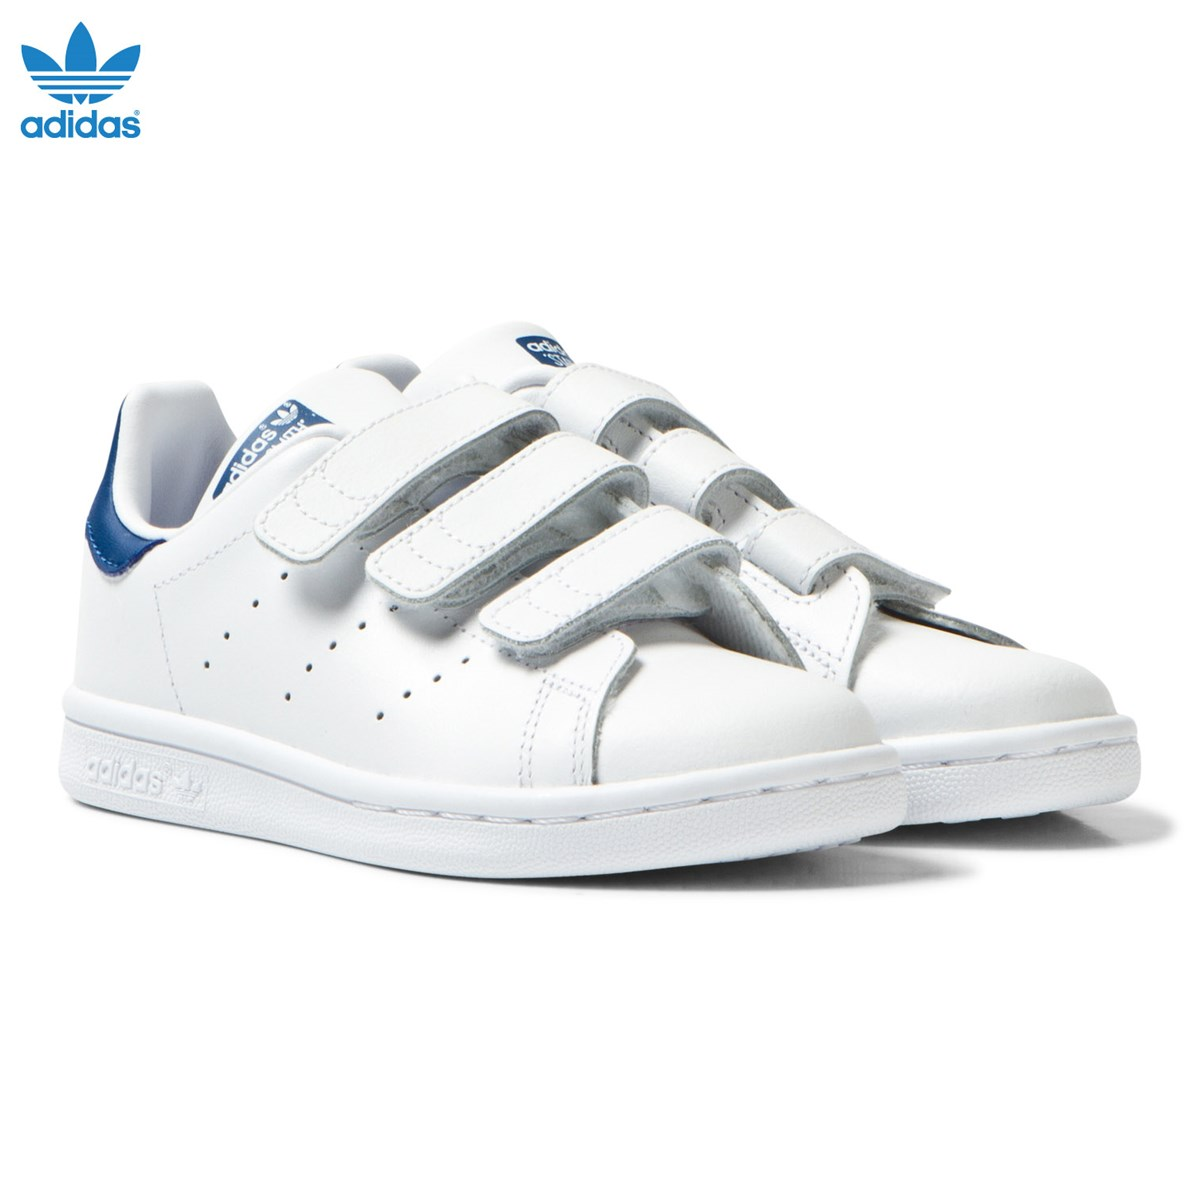 adidas Originals - Kids Stan Smith Trainers White and Blue ... f5d98c5926